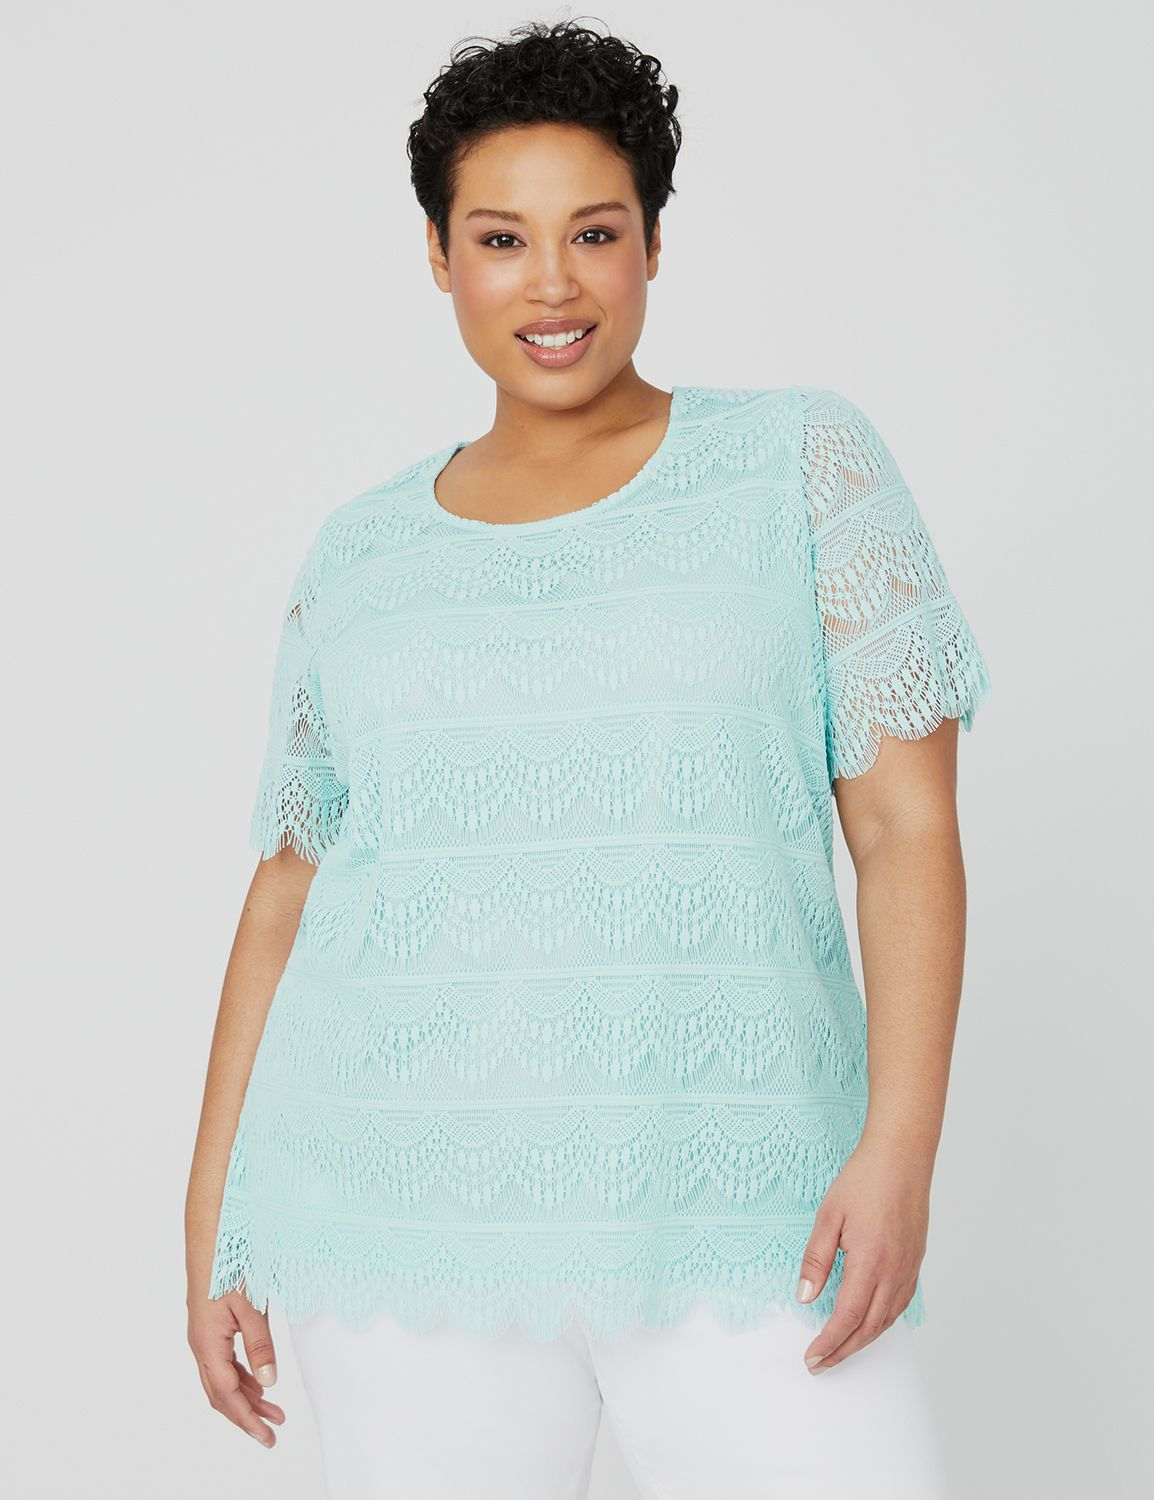 Waves of Lace Top 1087830 SCALLOP EDGE ALLOVER LACE MP-300100102